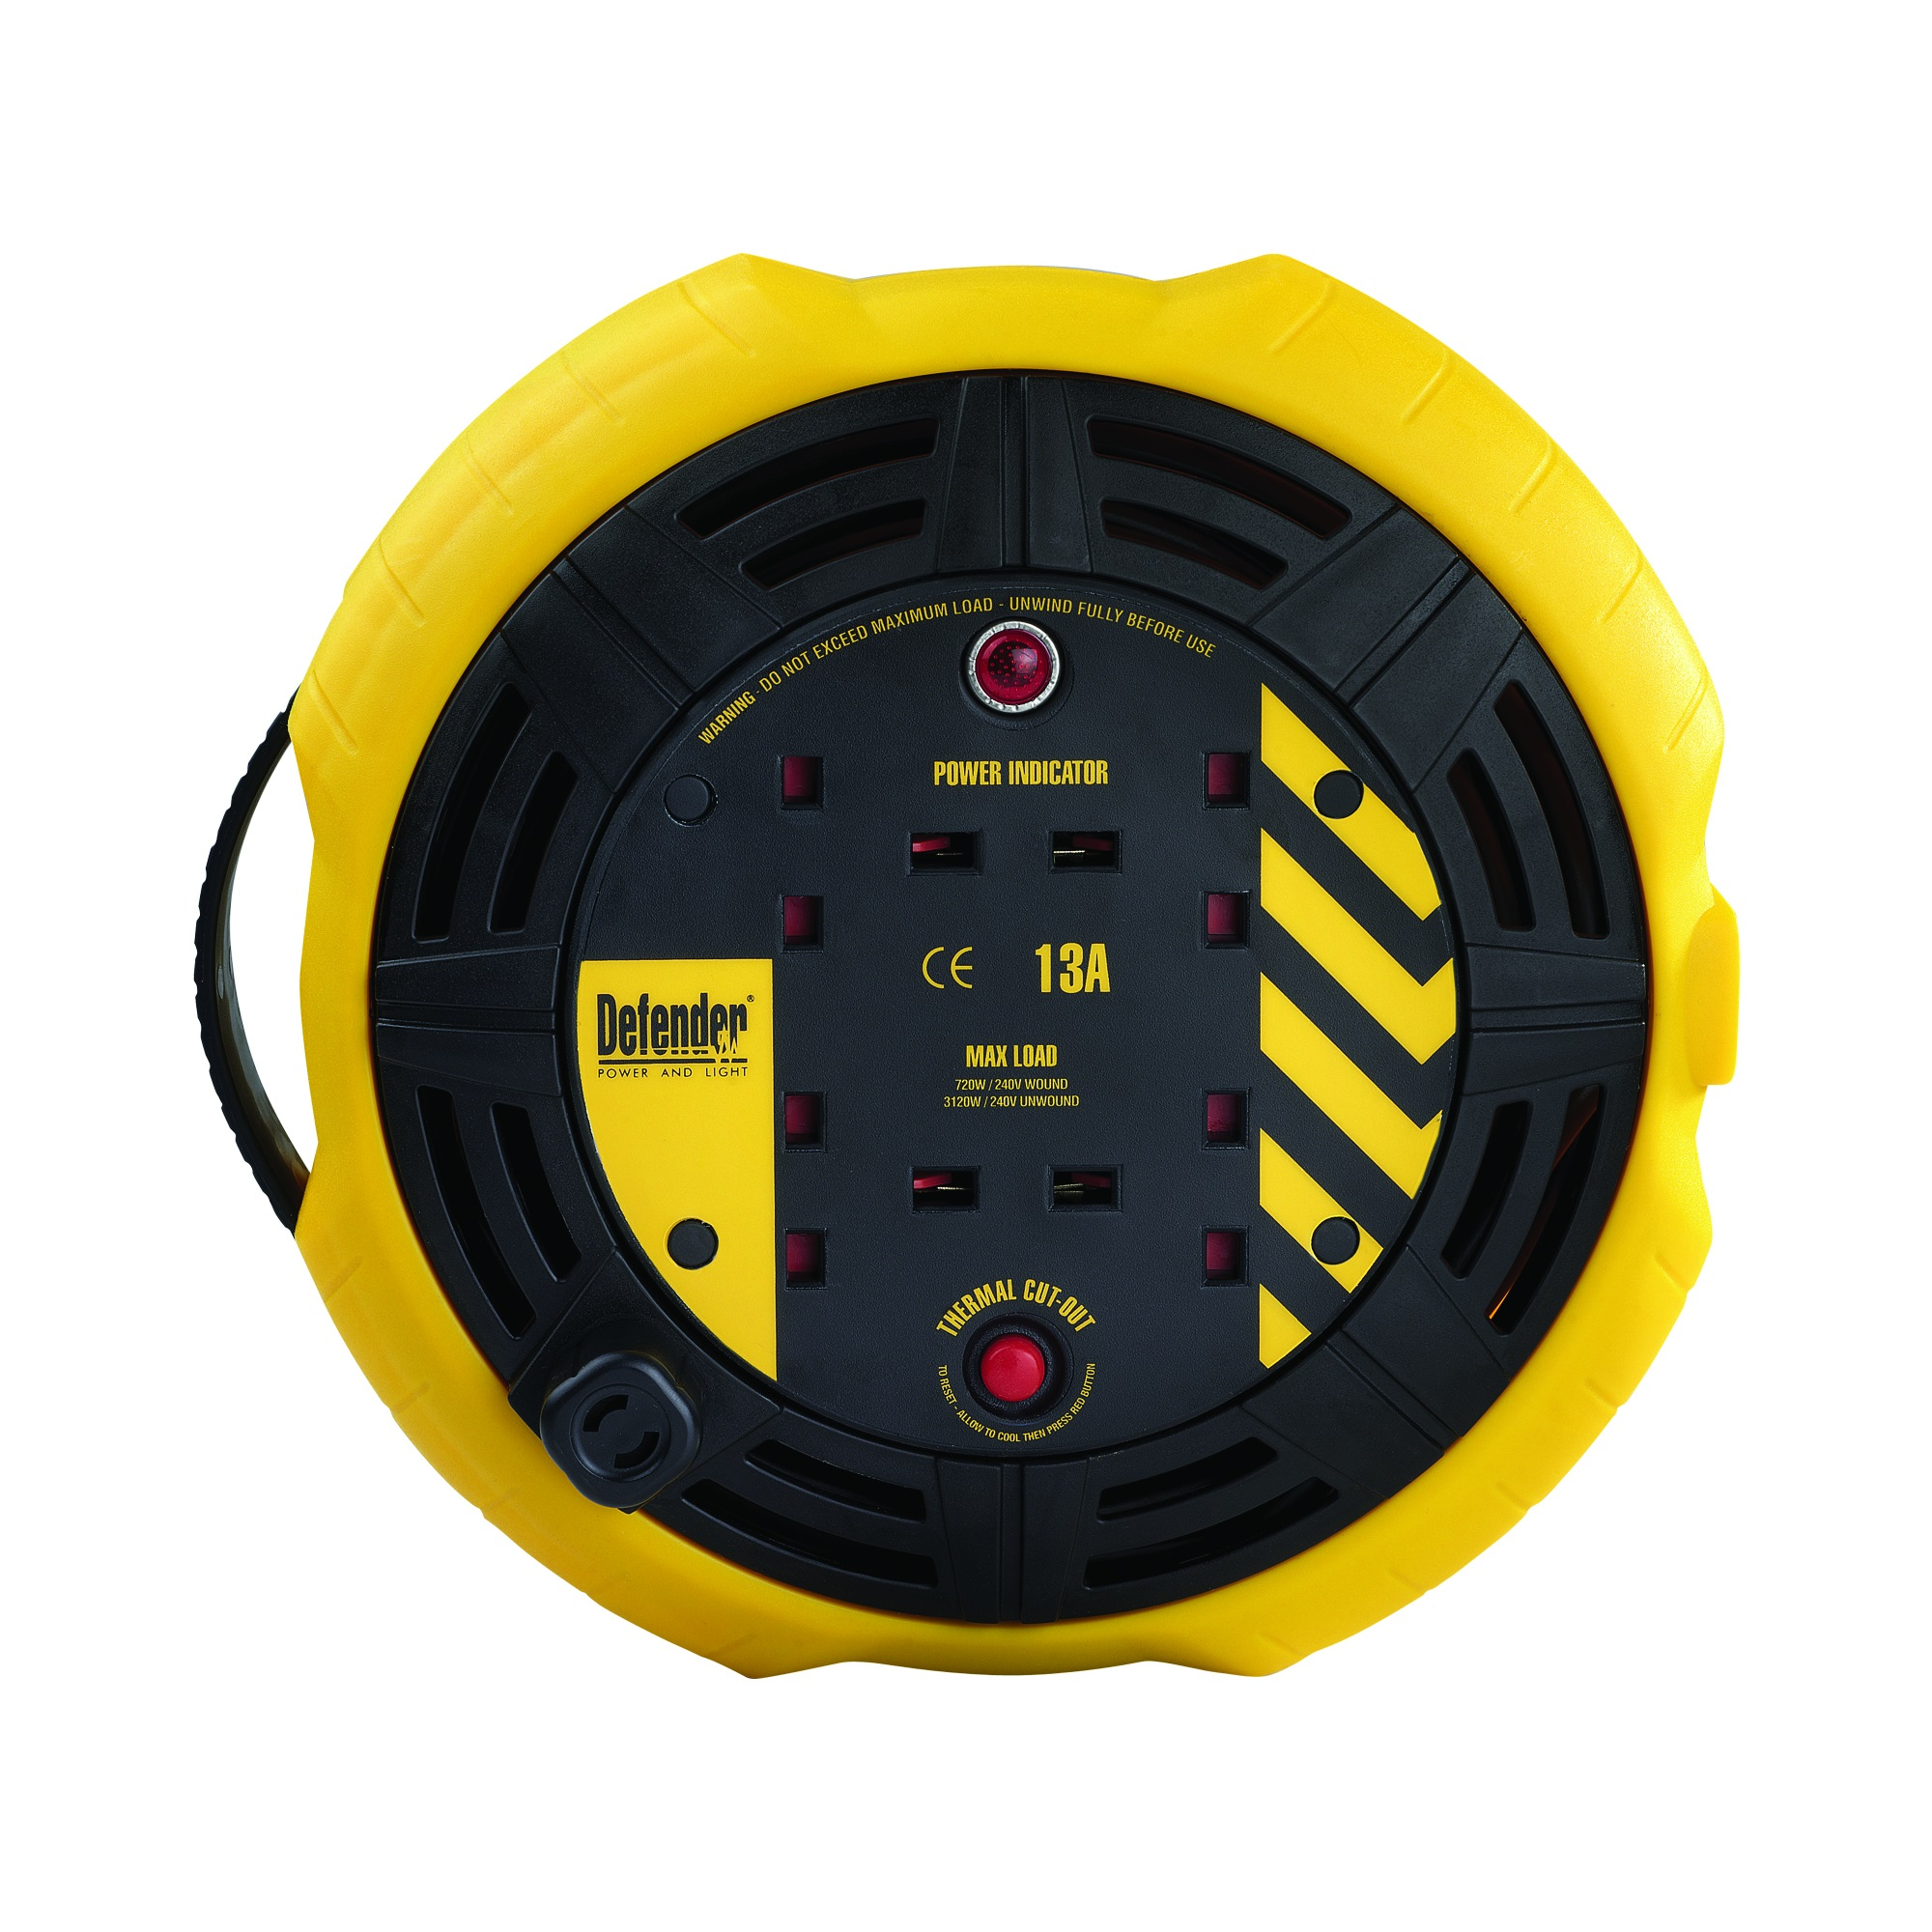 Defender 10M cassette reel with impact resistant yellow and black casing, 4 power outlets, easy wind reel and Defender branding